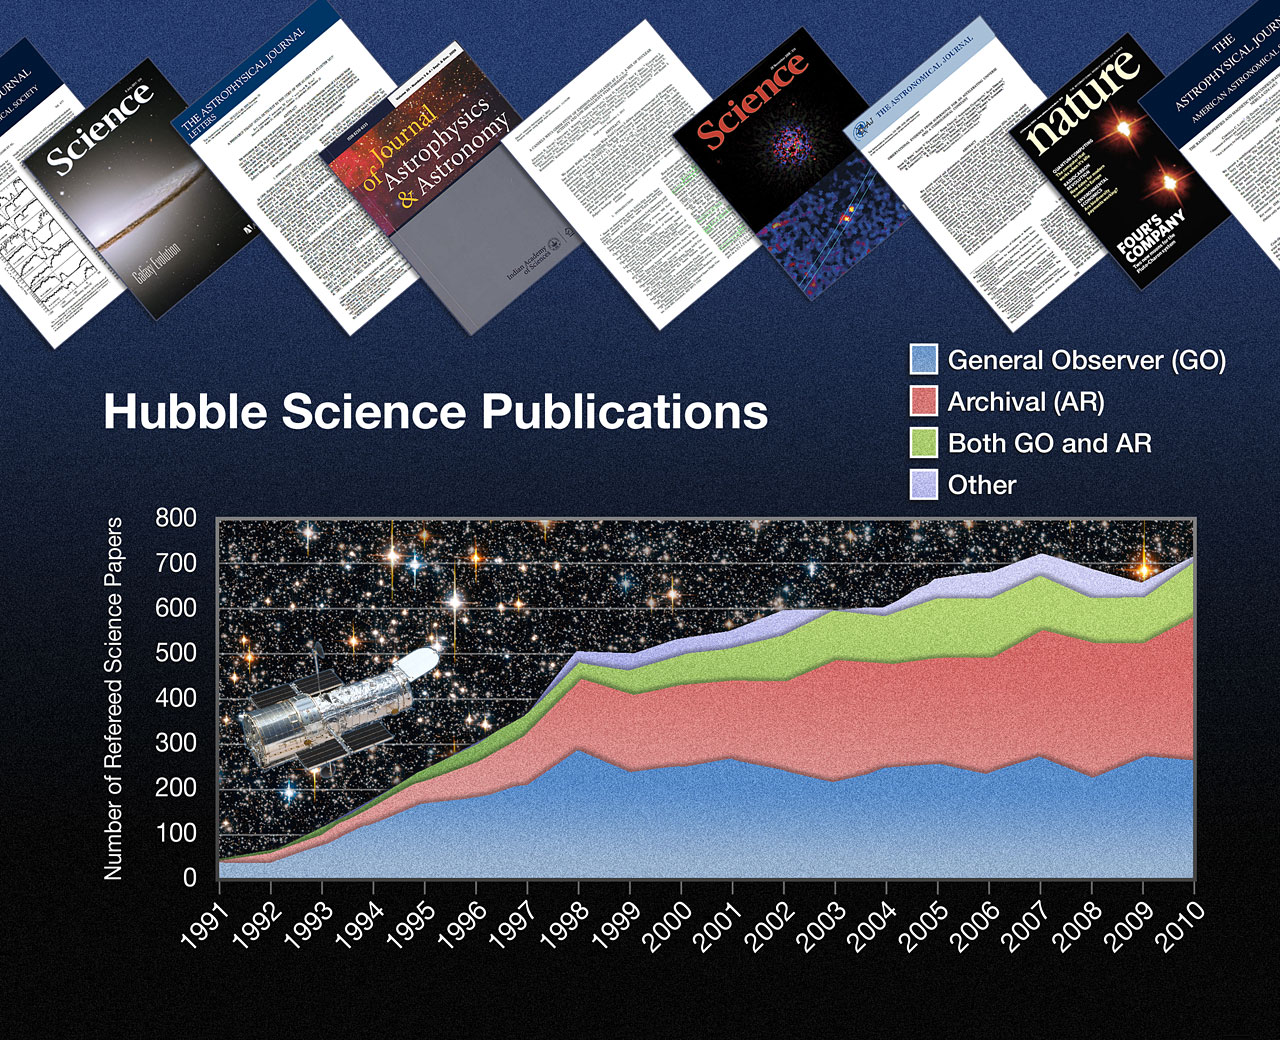 Hubble publication statistics